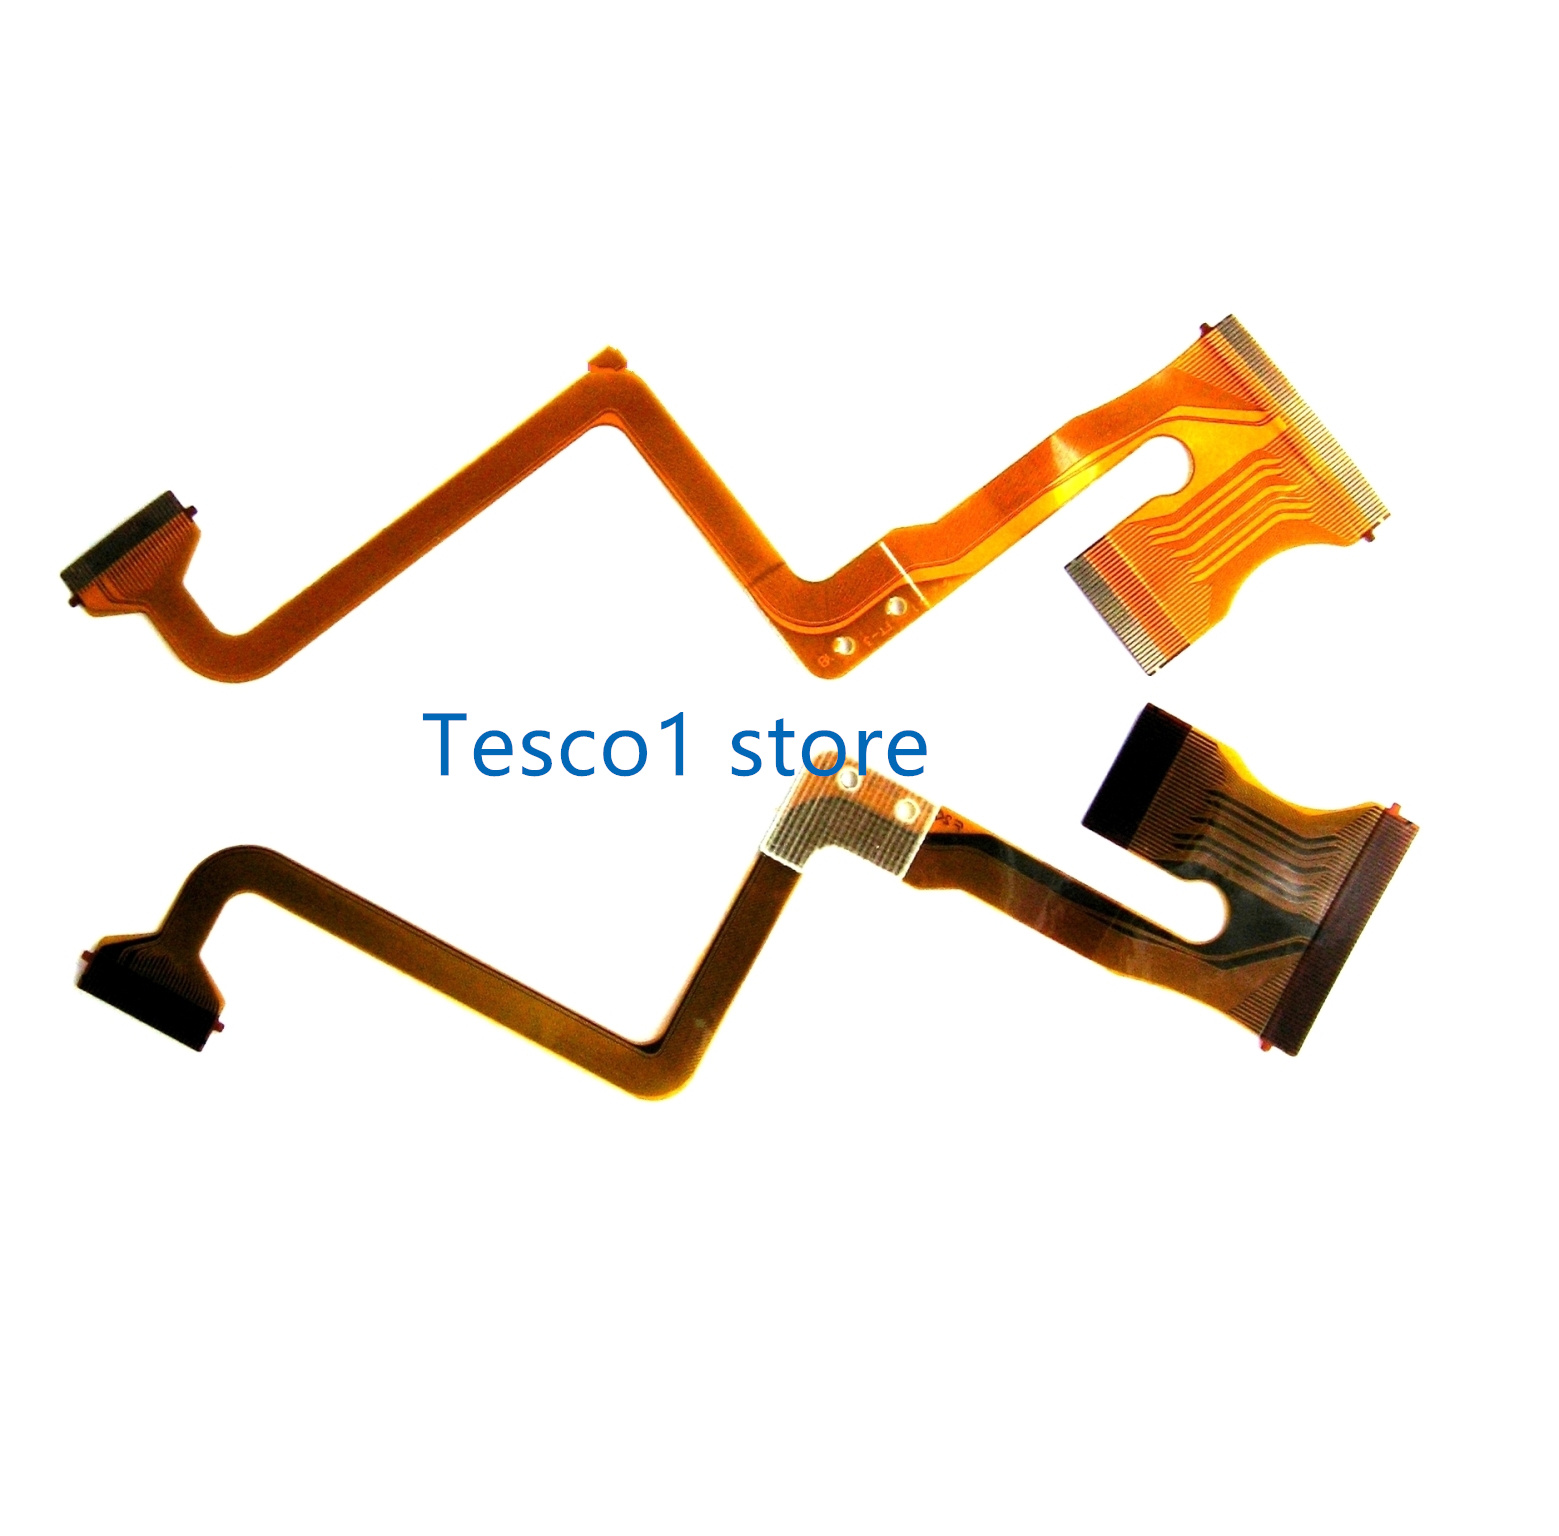 NEW LCD Flex Cable for JVC GZ-MS120 GZ-HM200 GZ-MS125 GZ-MS130 MS95 Repair Part